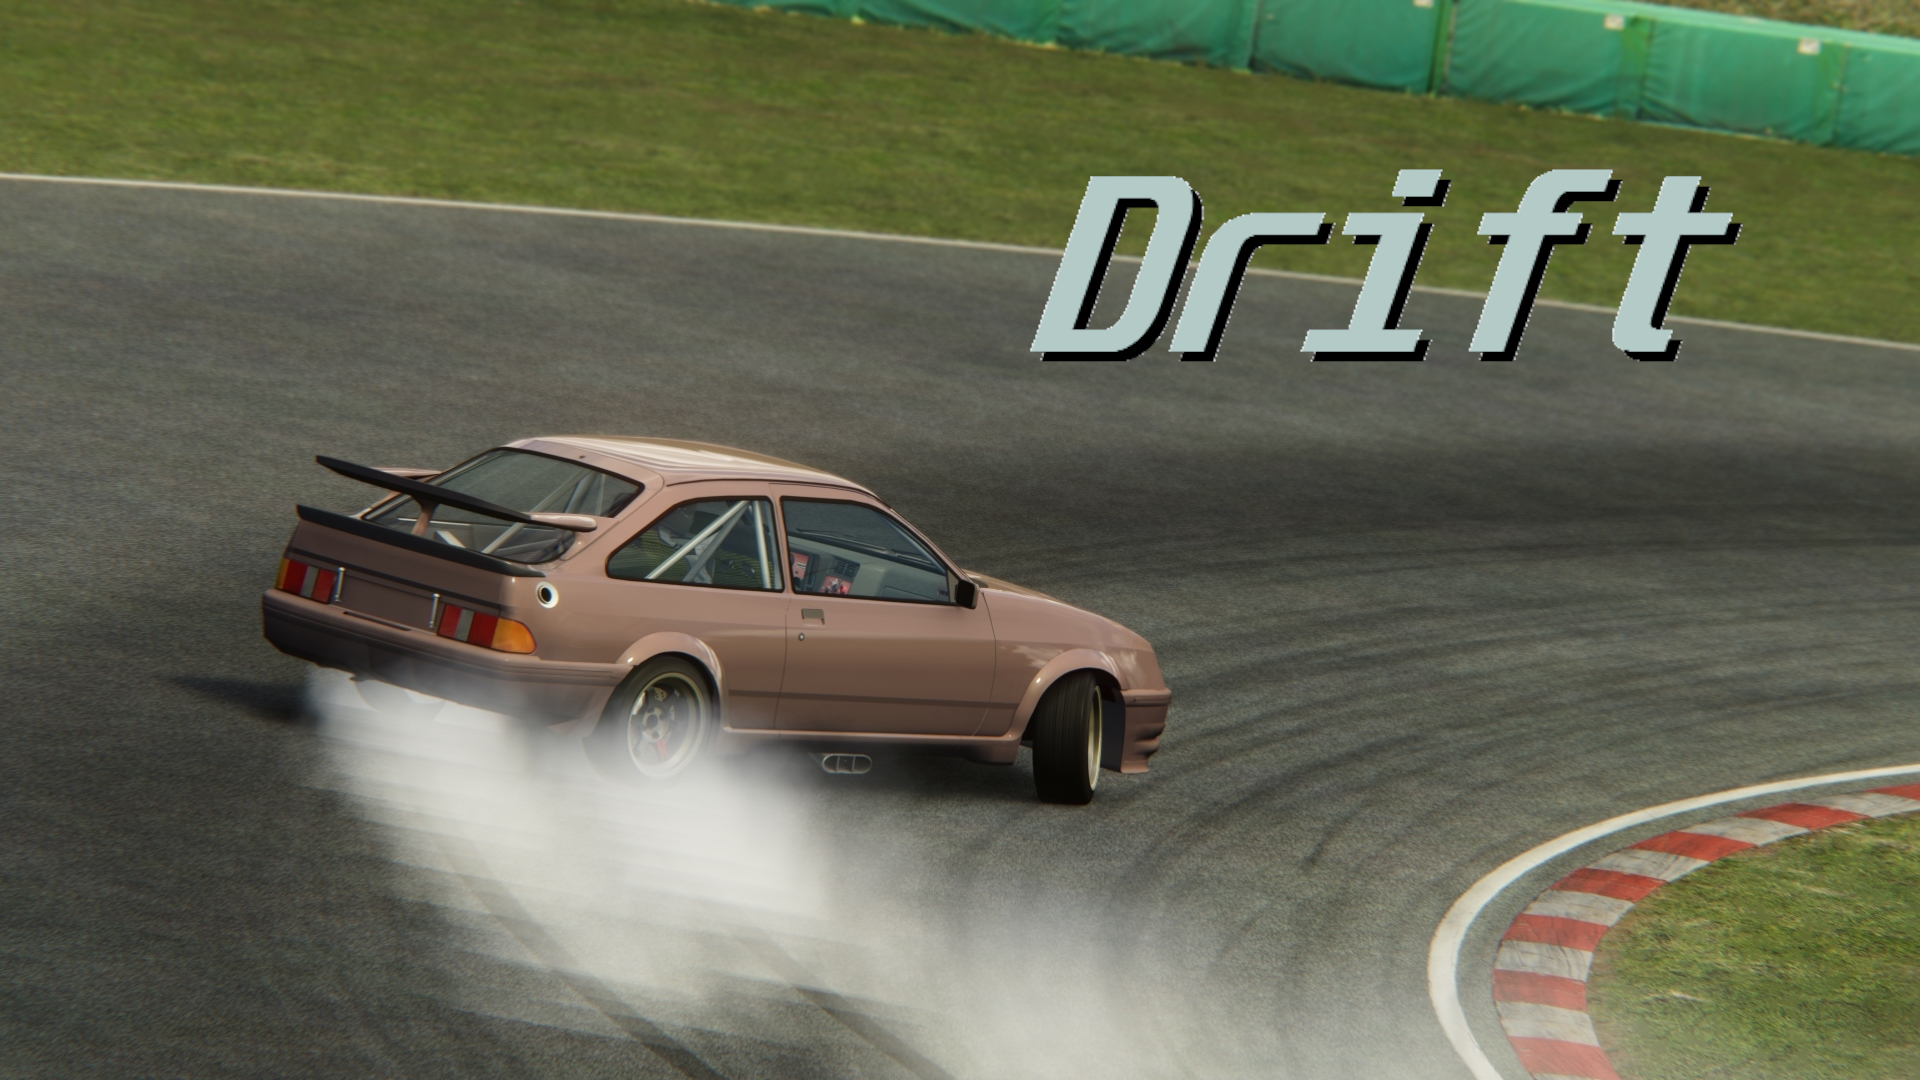 rs500 drift picture.jpg